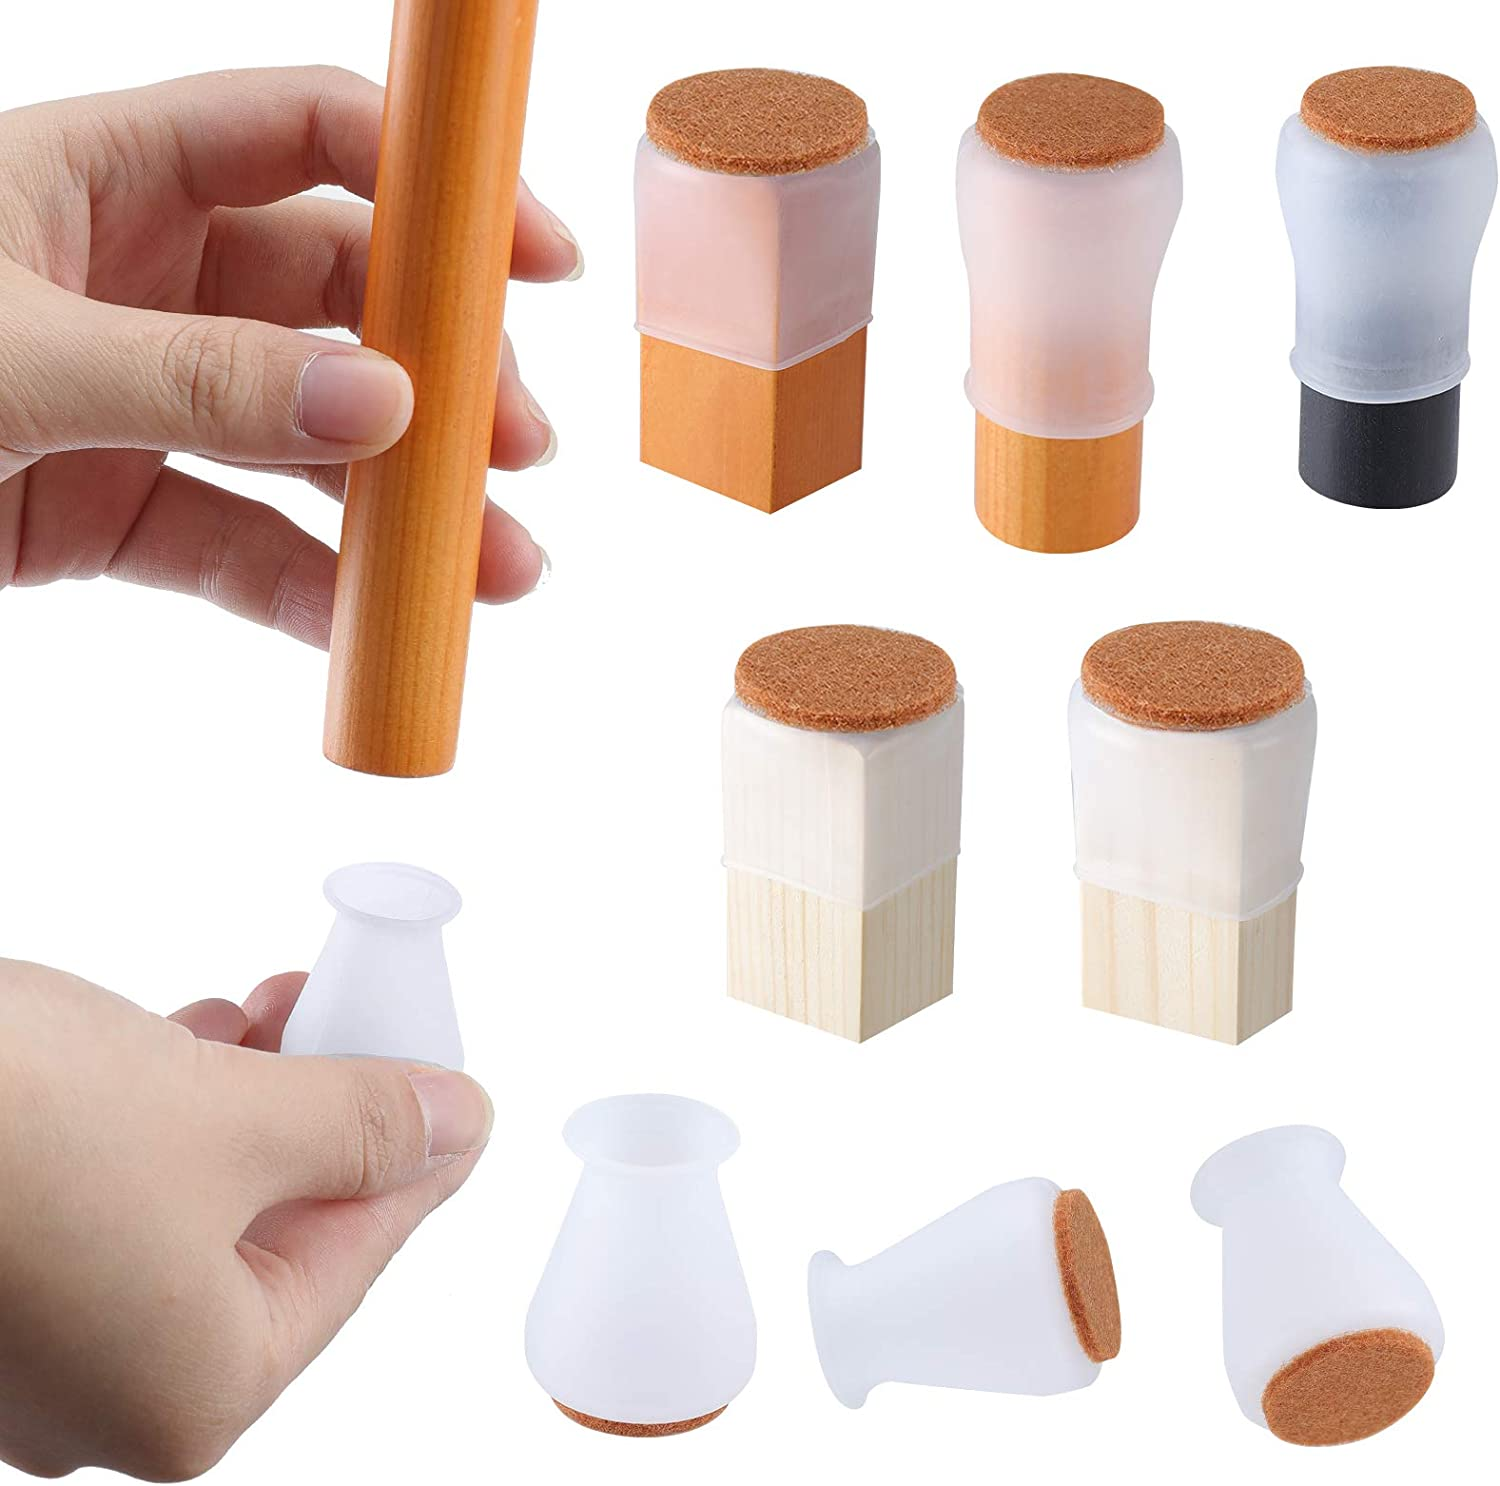 "Extra Small Silicone Chair Leg Floor Protectors with Felt, FIT 0.5"" to 1"" Glide Chair Leg Caps Silicon Furniture Leg Feet Cover Bottom Slide Protect Wooden Floor No Scratches No Noise Clear 16 Pcs"